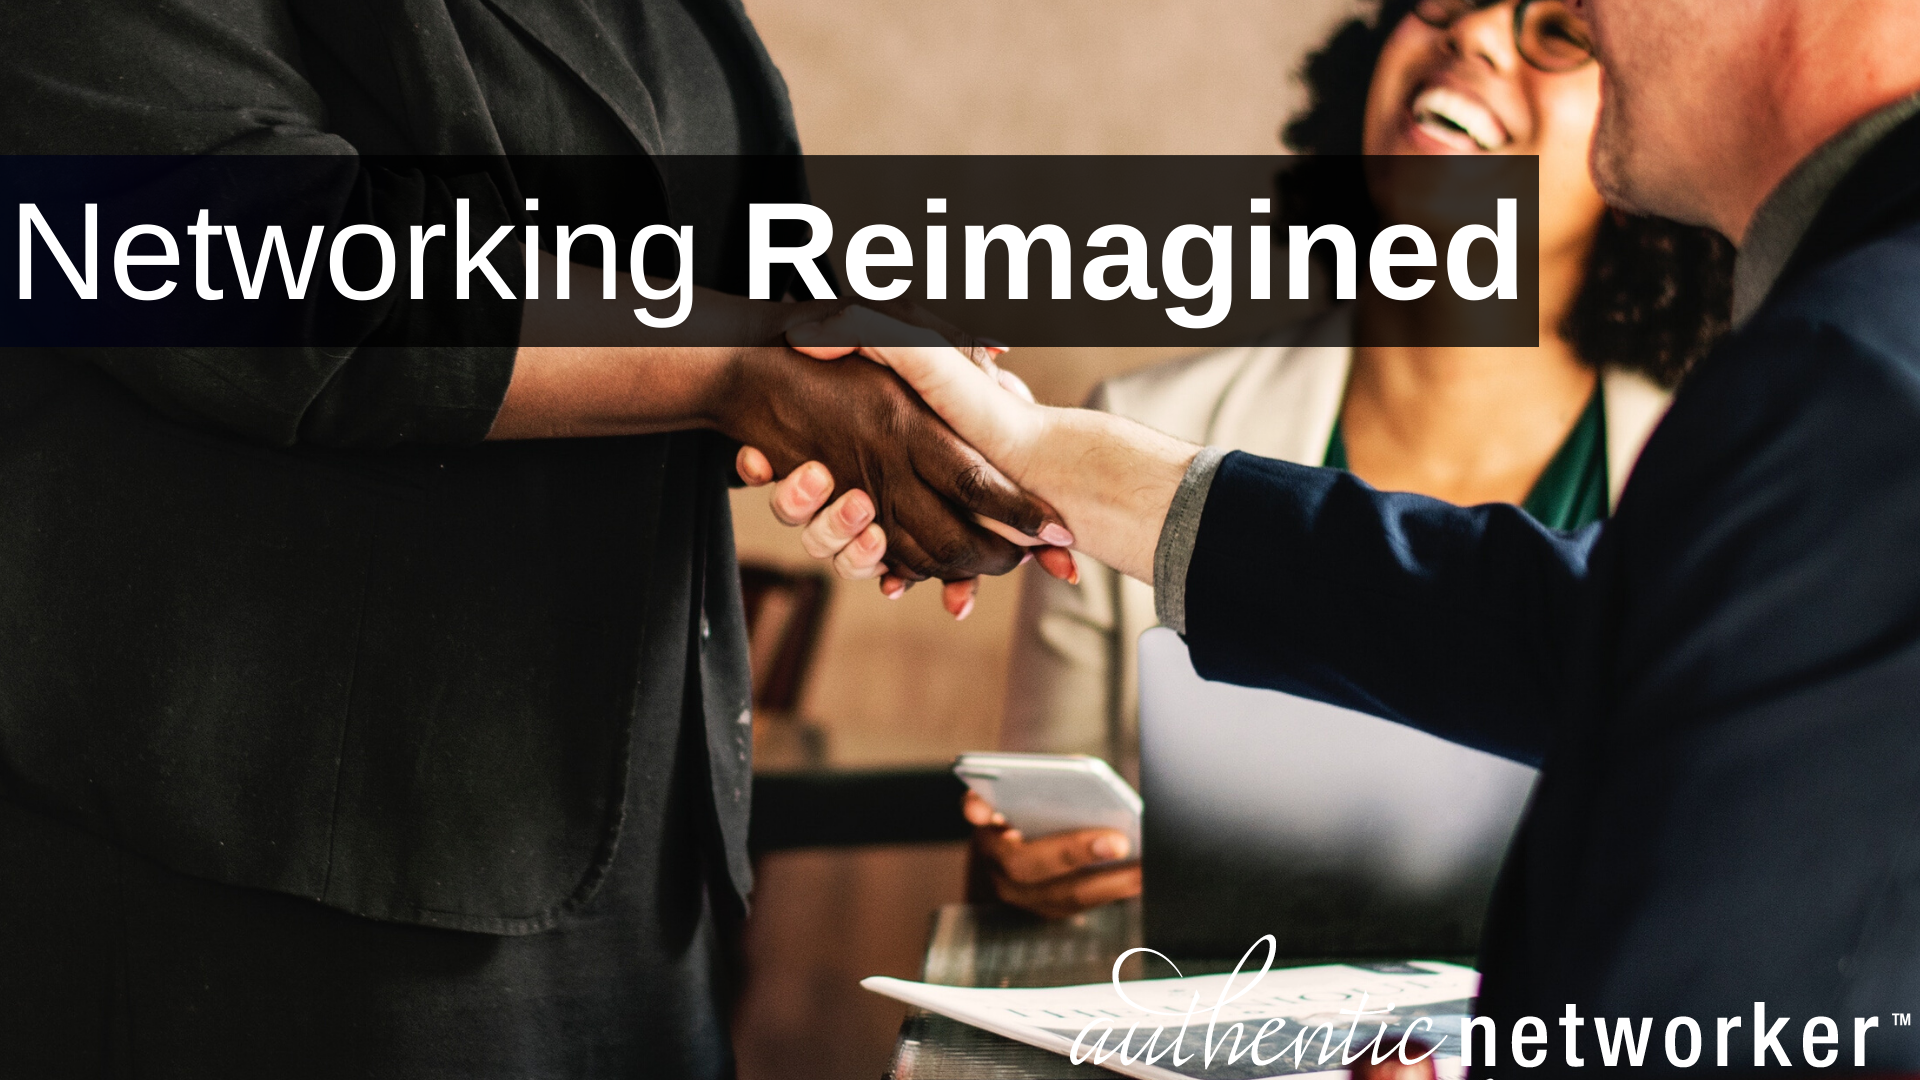 Nassau Networking Reimagined